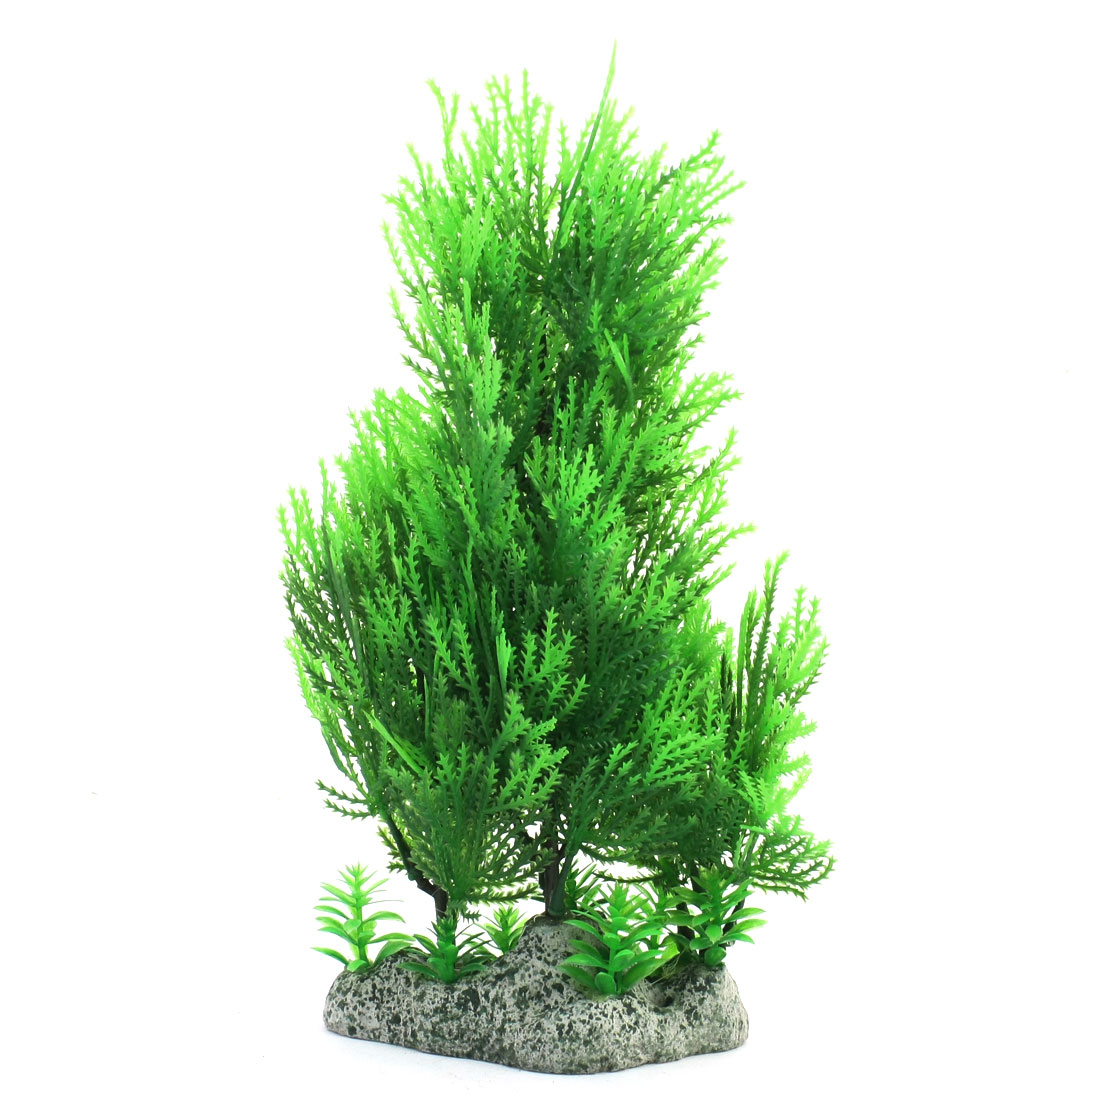 Fish Tank Aquarium 26cm High Emulational Green Plastic Water Plant Glass Decoration w Ceramic Base